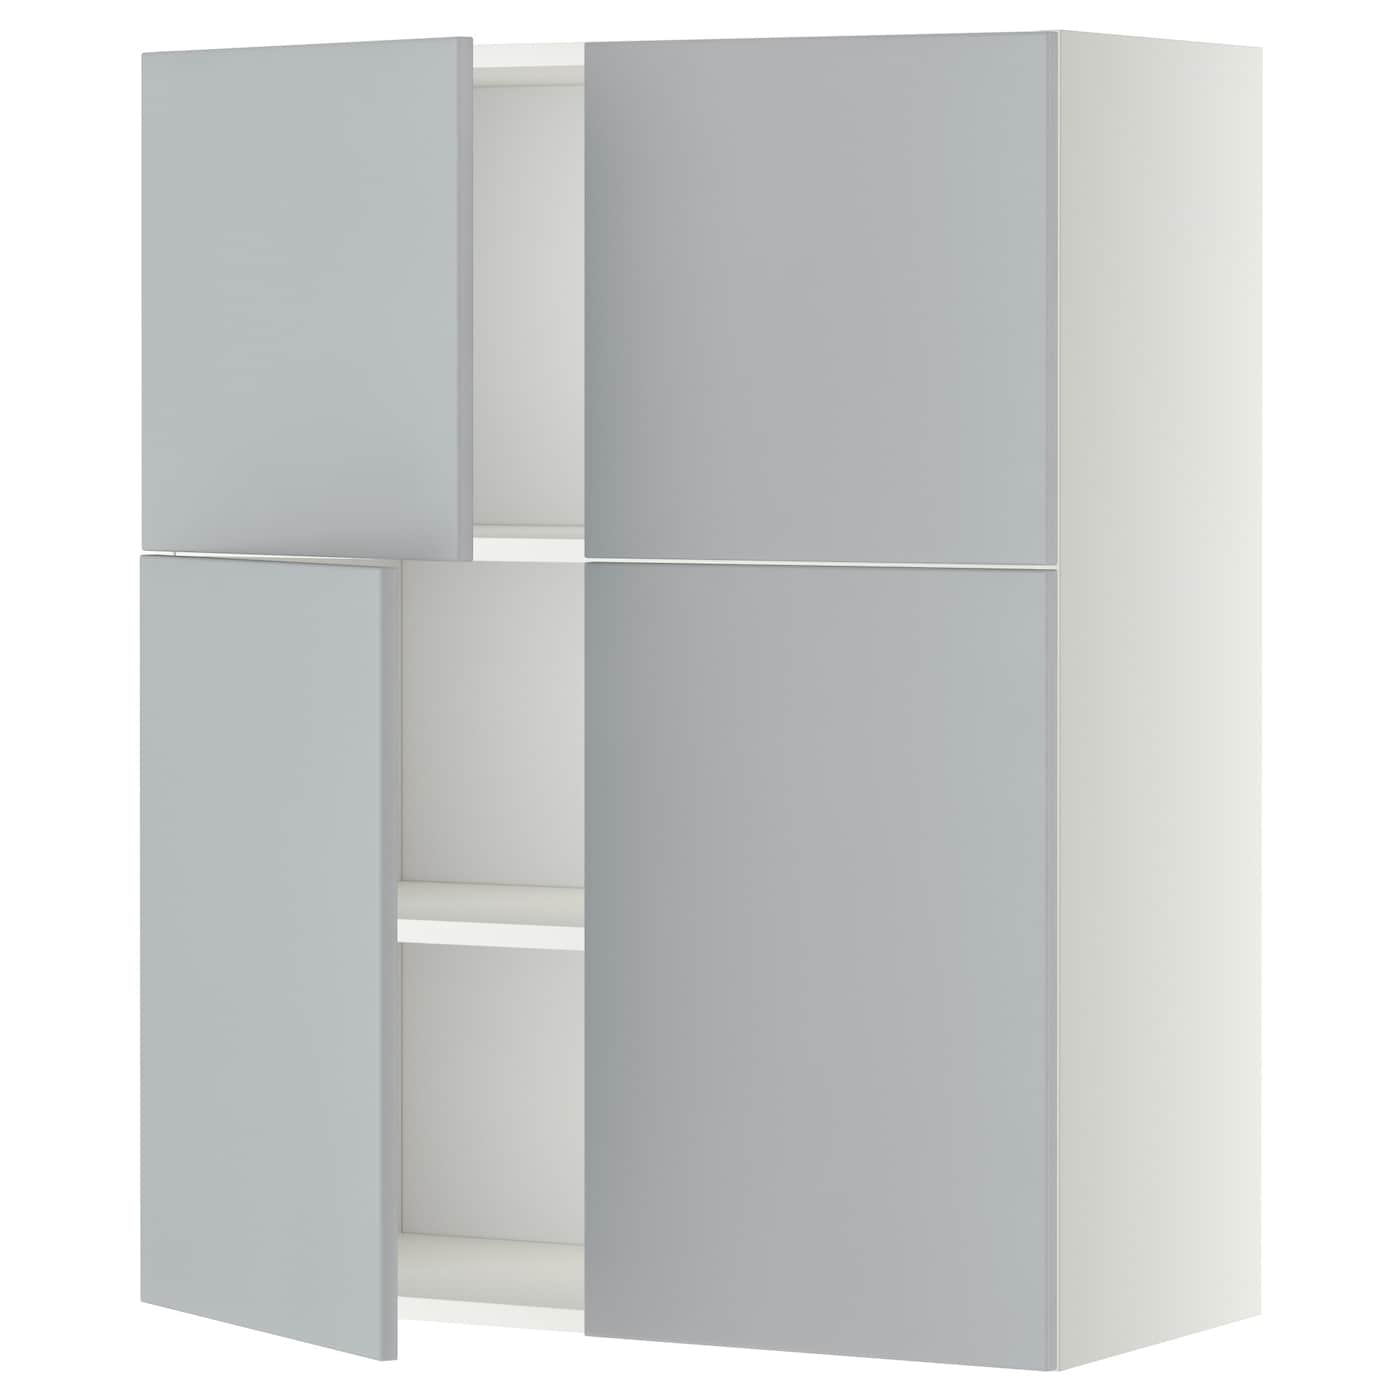 Metod wall cabinet with shelves 4 doors white veddinge for Grey kitchen wall units